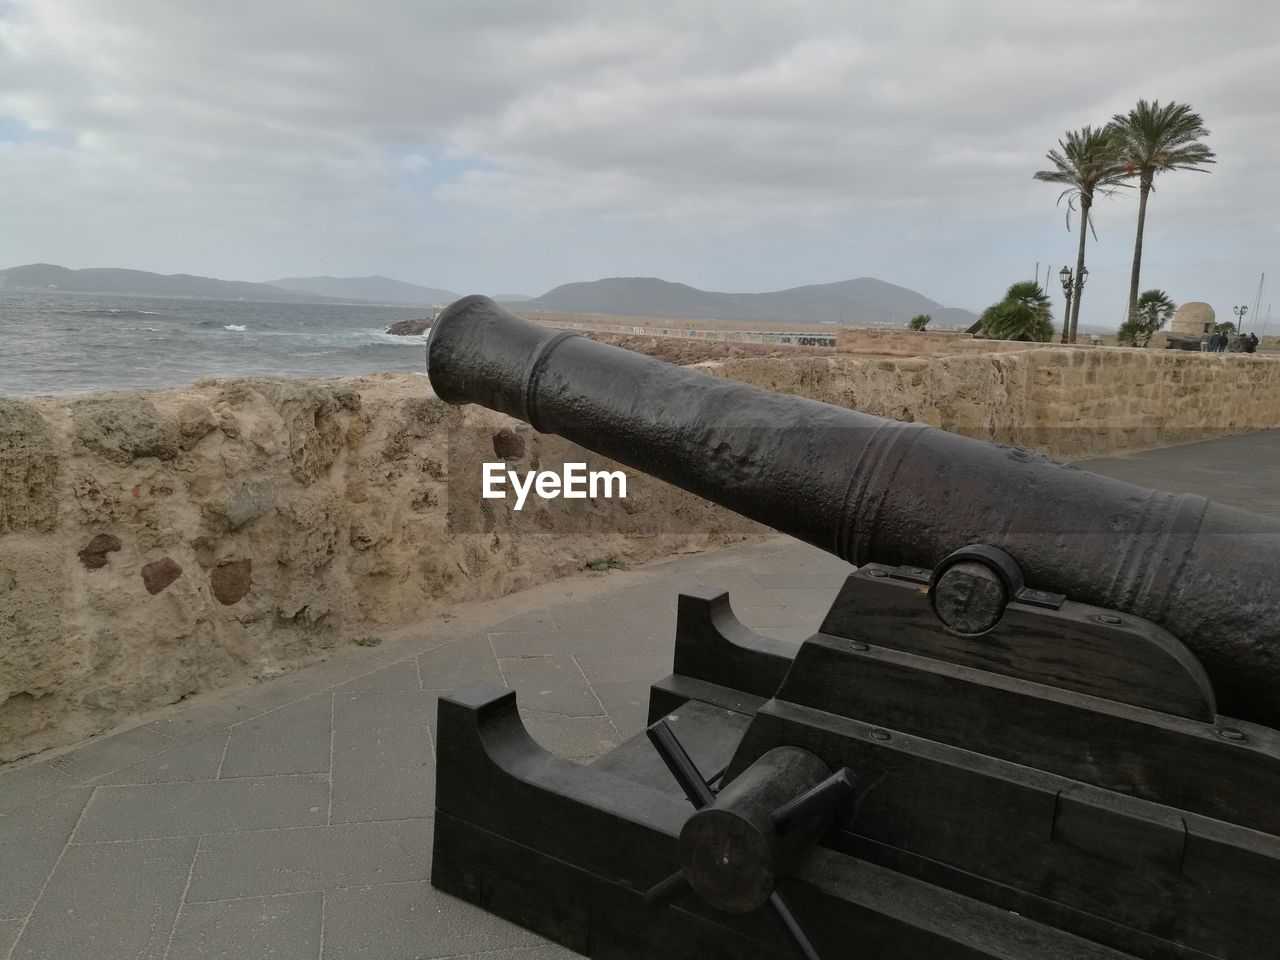 history, weapon, cannon, canon, sea, tourism, fort, military, travel destinations, the past, sky, war, cloud - sky, travel, hand-held telescope, ancient, beach, old-fashioned, scenics, sand, nature, day, outdoors, water, no people, coin-operated binoculars, close-up